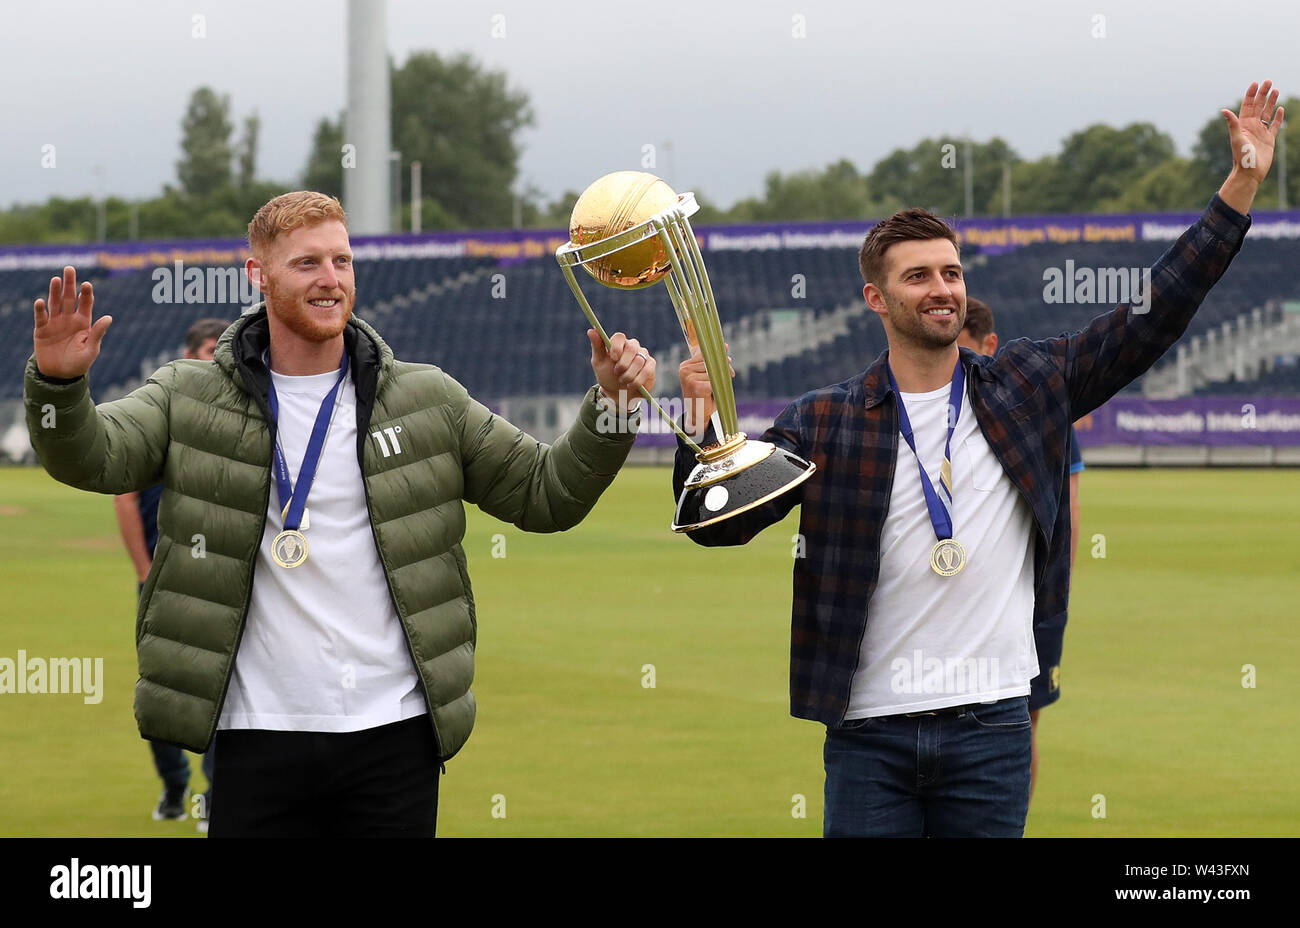 Ben Stokes (left) and Mark Wood celebrate with Cricket World Cup ahead of the Vitality Blast T20 match at Emirates Riverside, Durham. - Stock Image